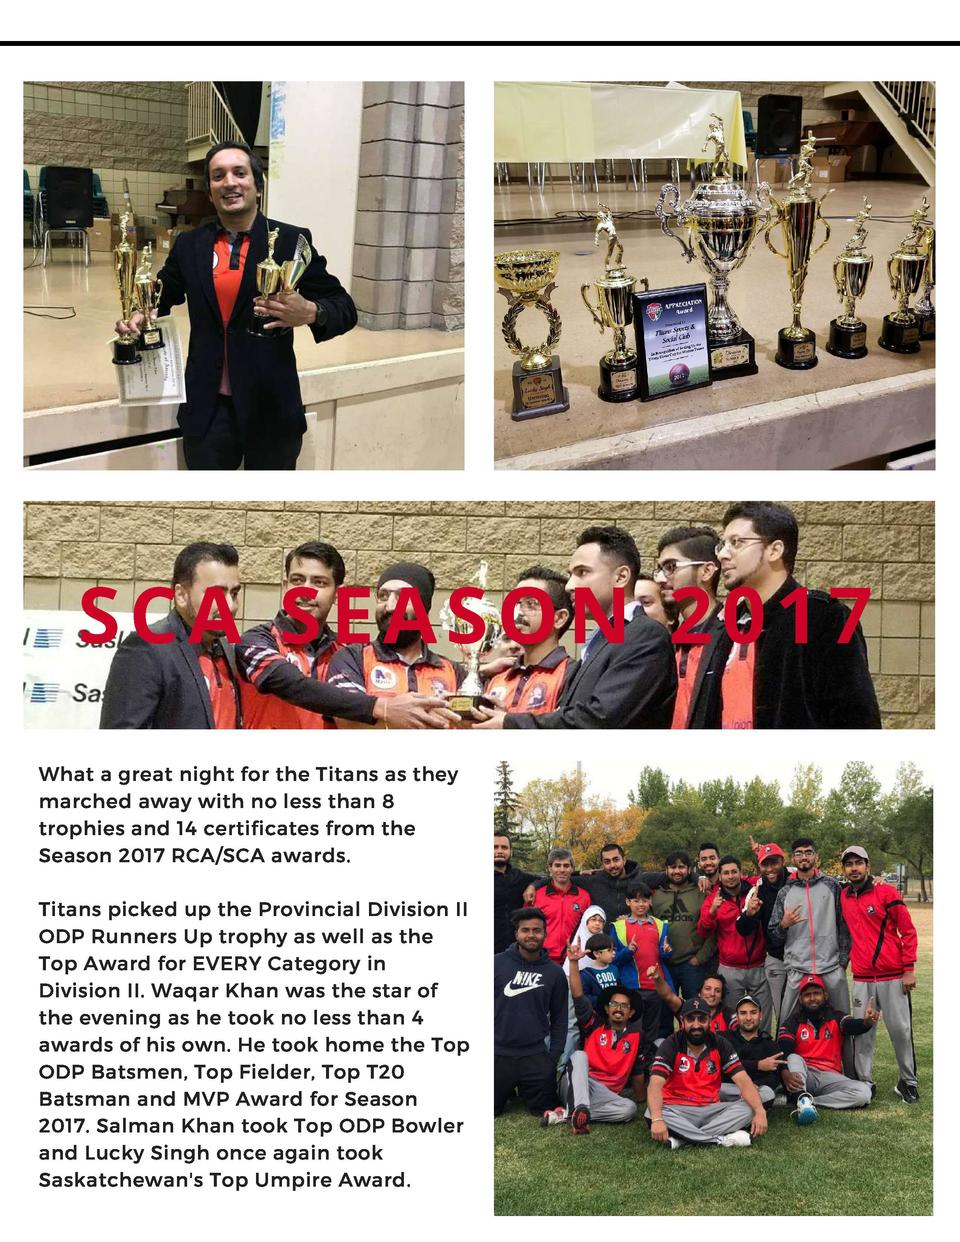 SCA SEASON 2017 What a great night for the Titans as they marched away with no less than 8 trophies and 14 certificates fr...